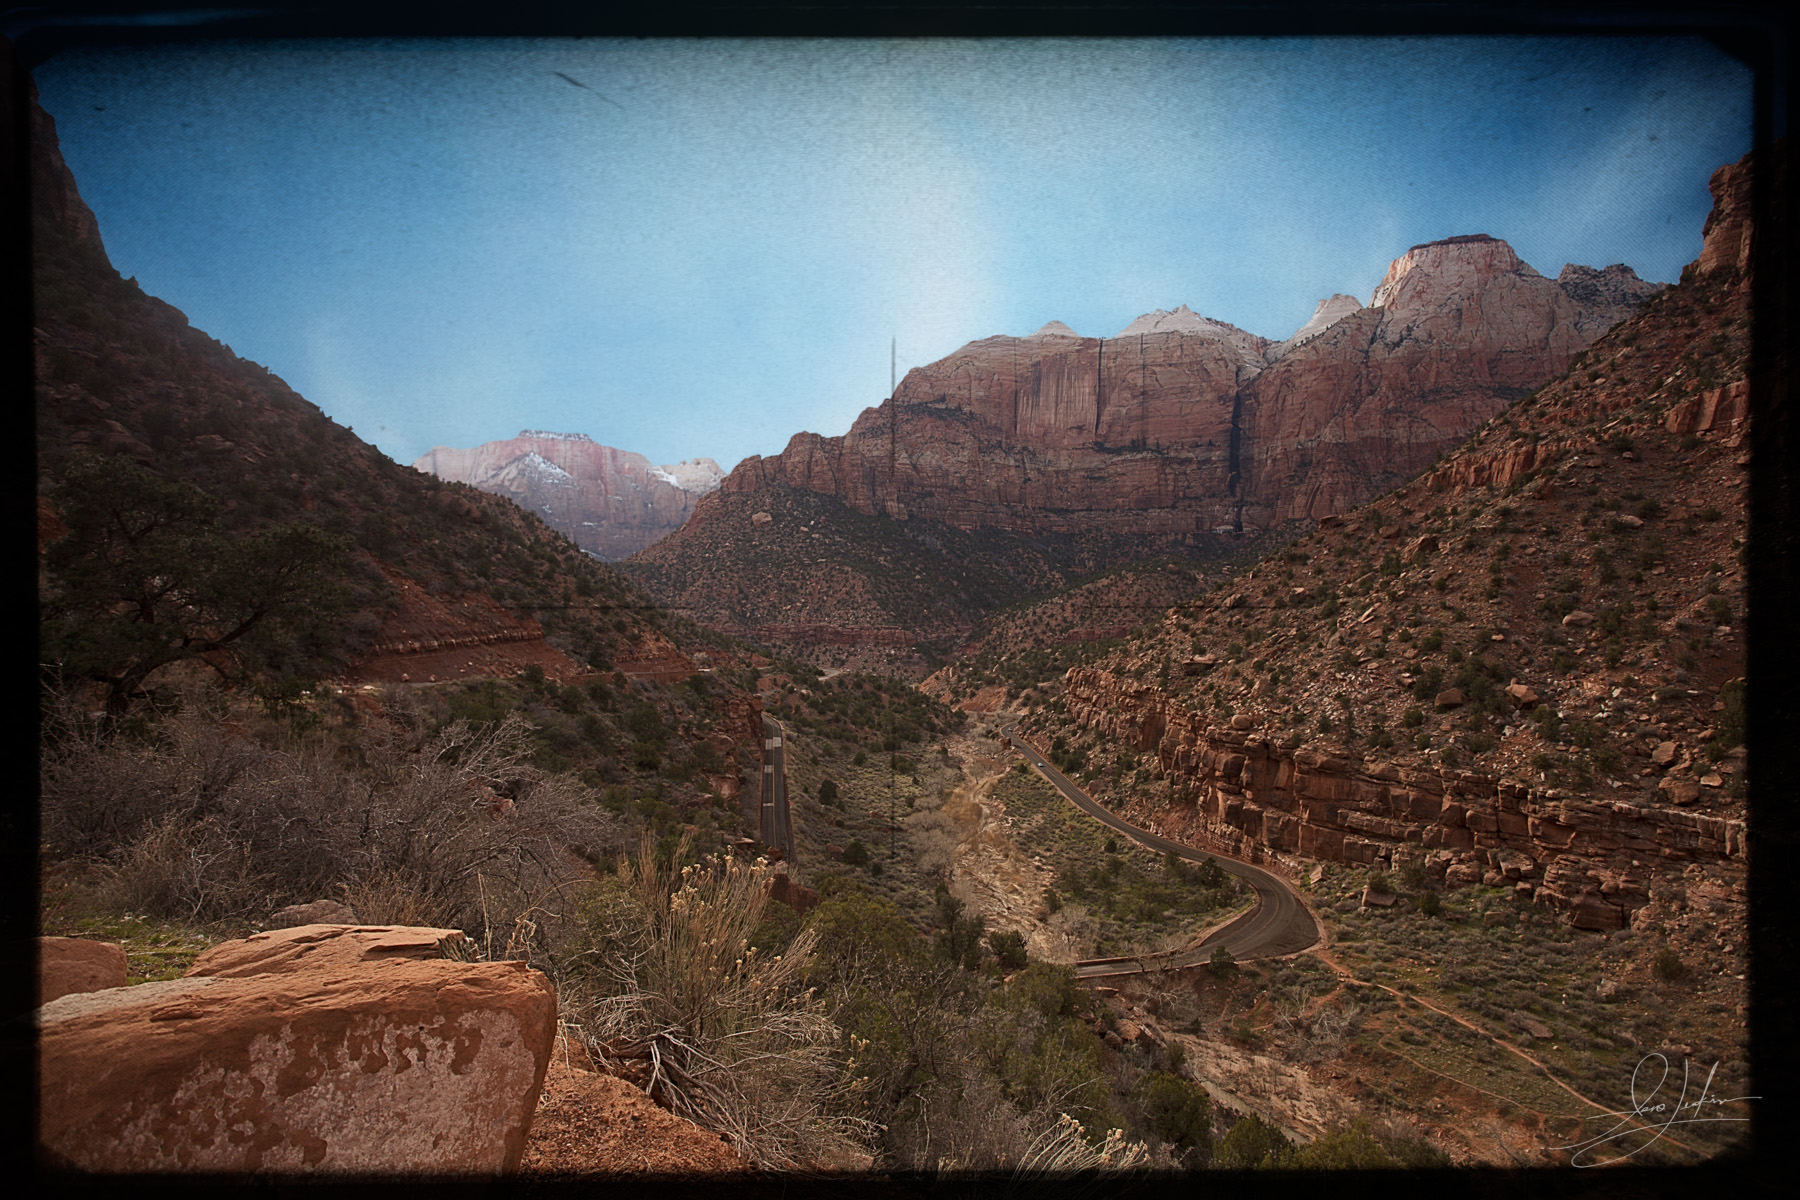 0313-Zion National Park-IMG_4159